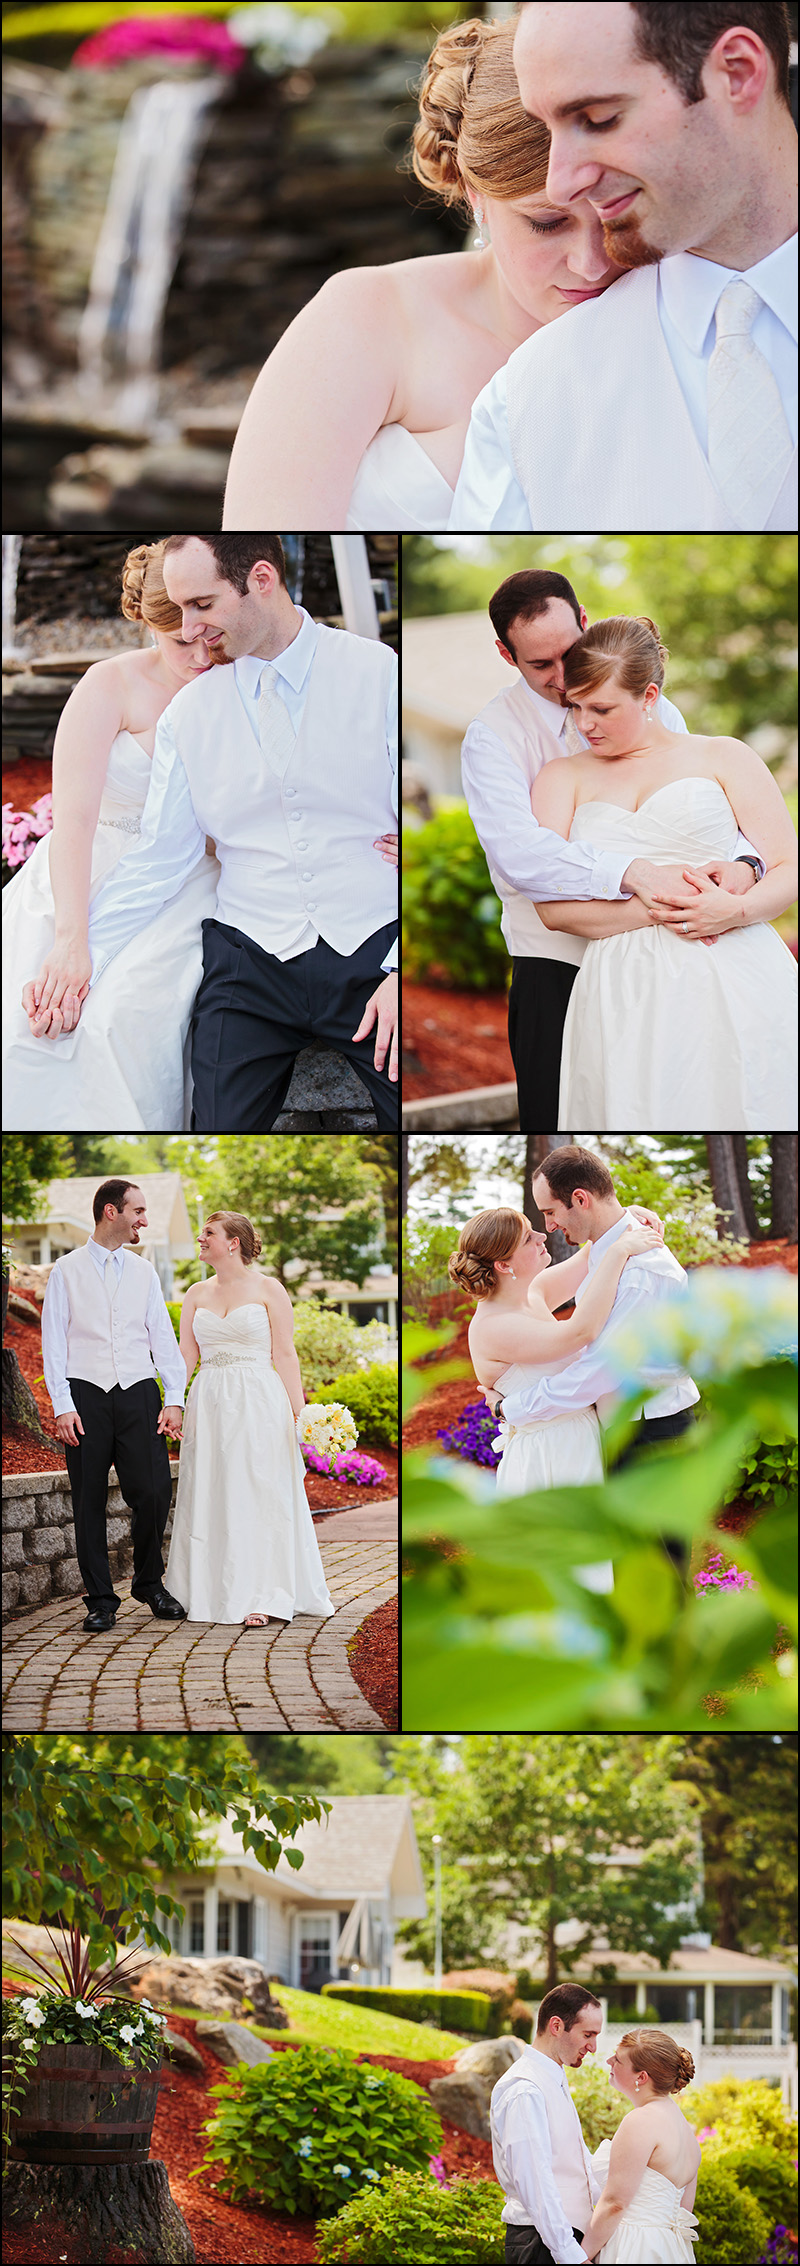 NEW ENGLAND WEDDING PICTURES AT CASTLETON NH